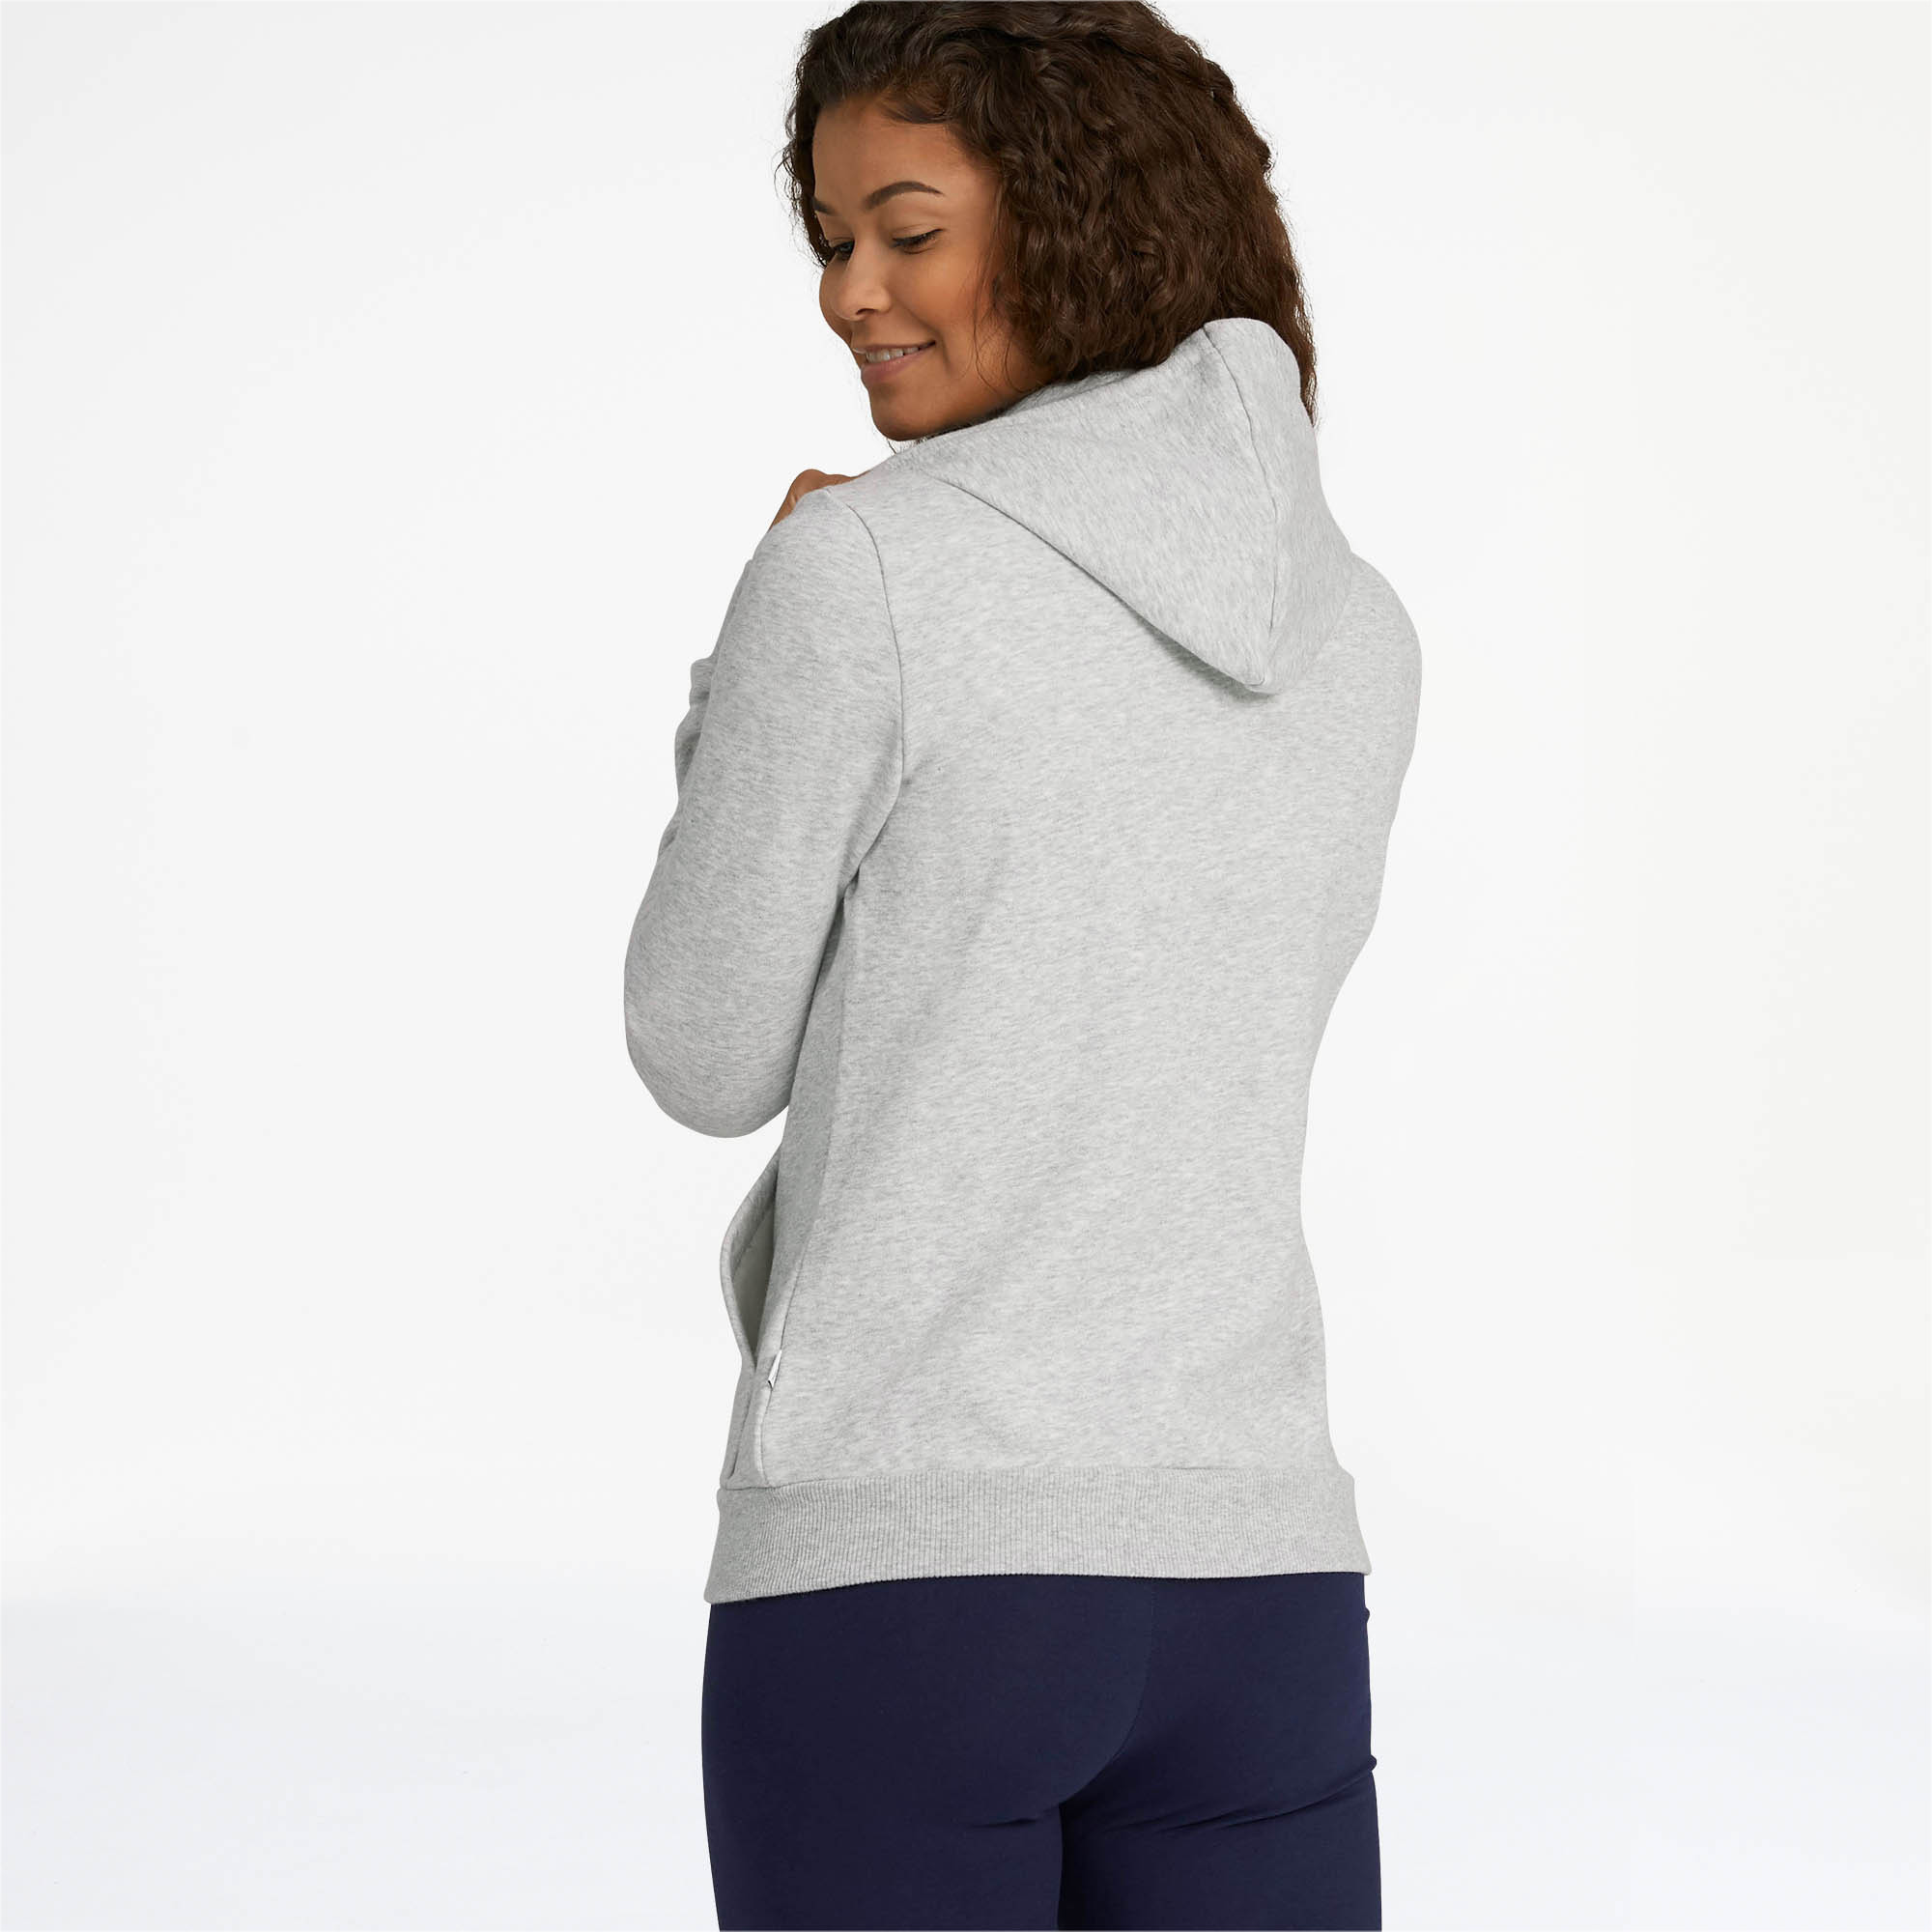 PUMA-Women-039-s-Essential-Fleece-Hooded-Jacket-Women-Sweat-Basics thumbnail 11